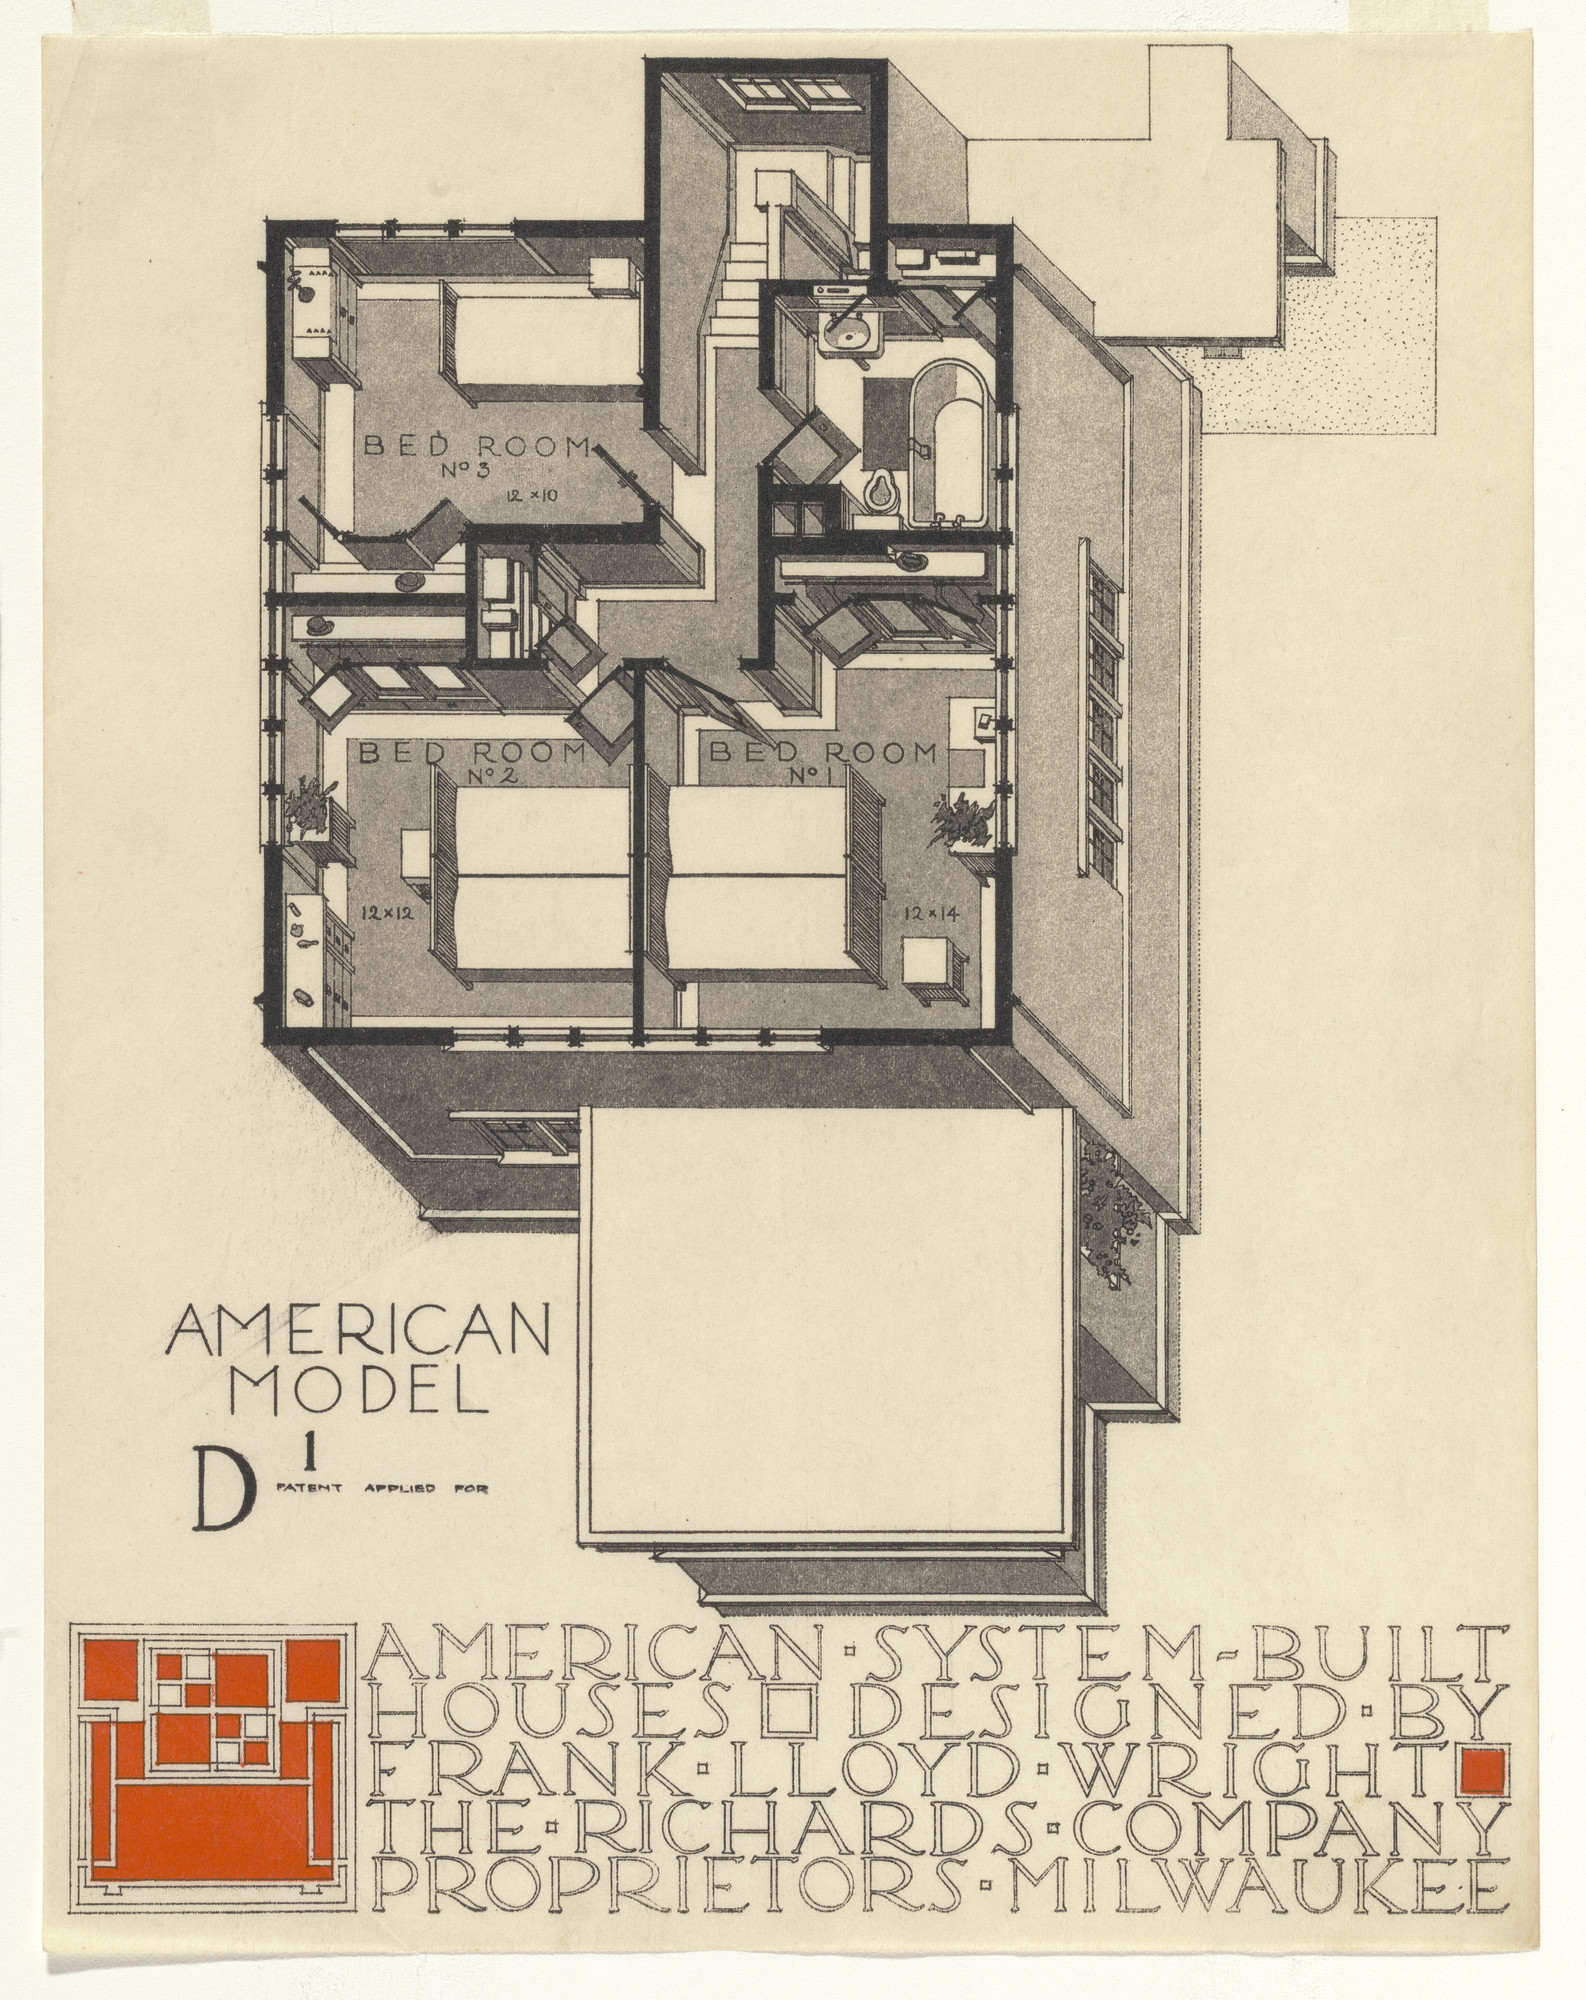 Frank Lloyd Wright. American System-Built Houses for The Richards Company project, Milwaukee, Wisconsin (Axonometric). 1915-17